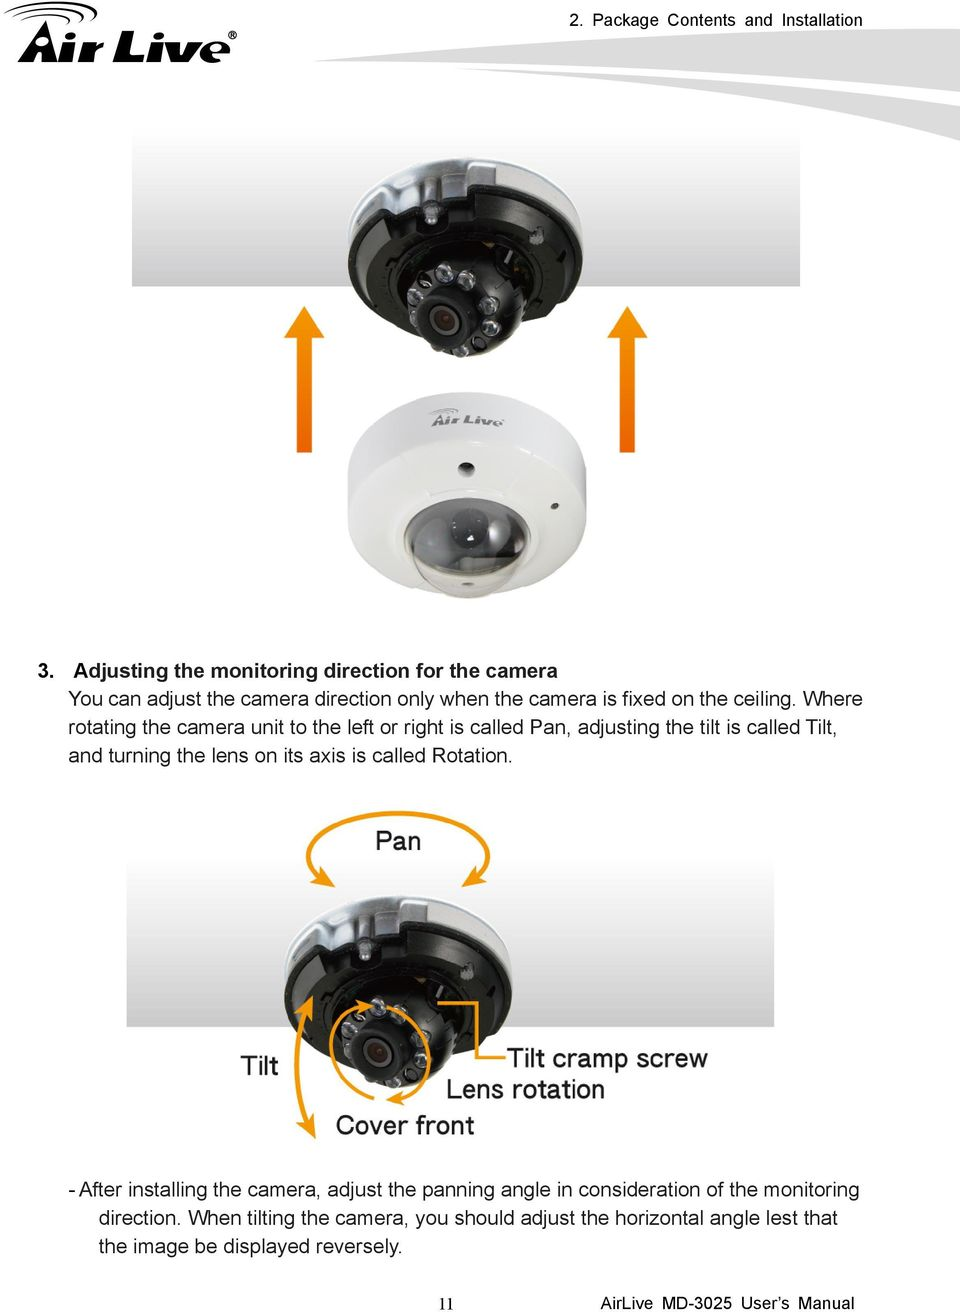 Where rotating the camera unit to the left or right is called Pan, adjusting the tilt is called Tilt, and turning the lens on its axis